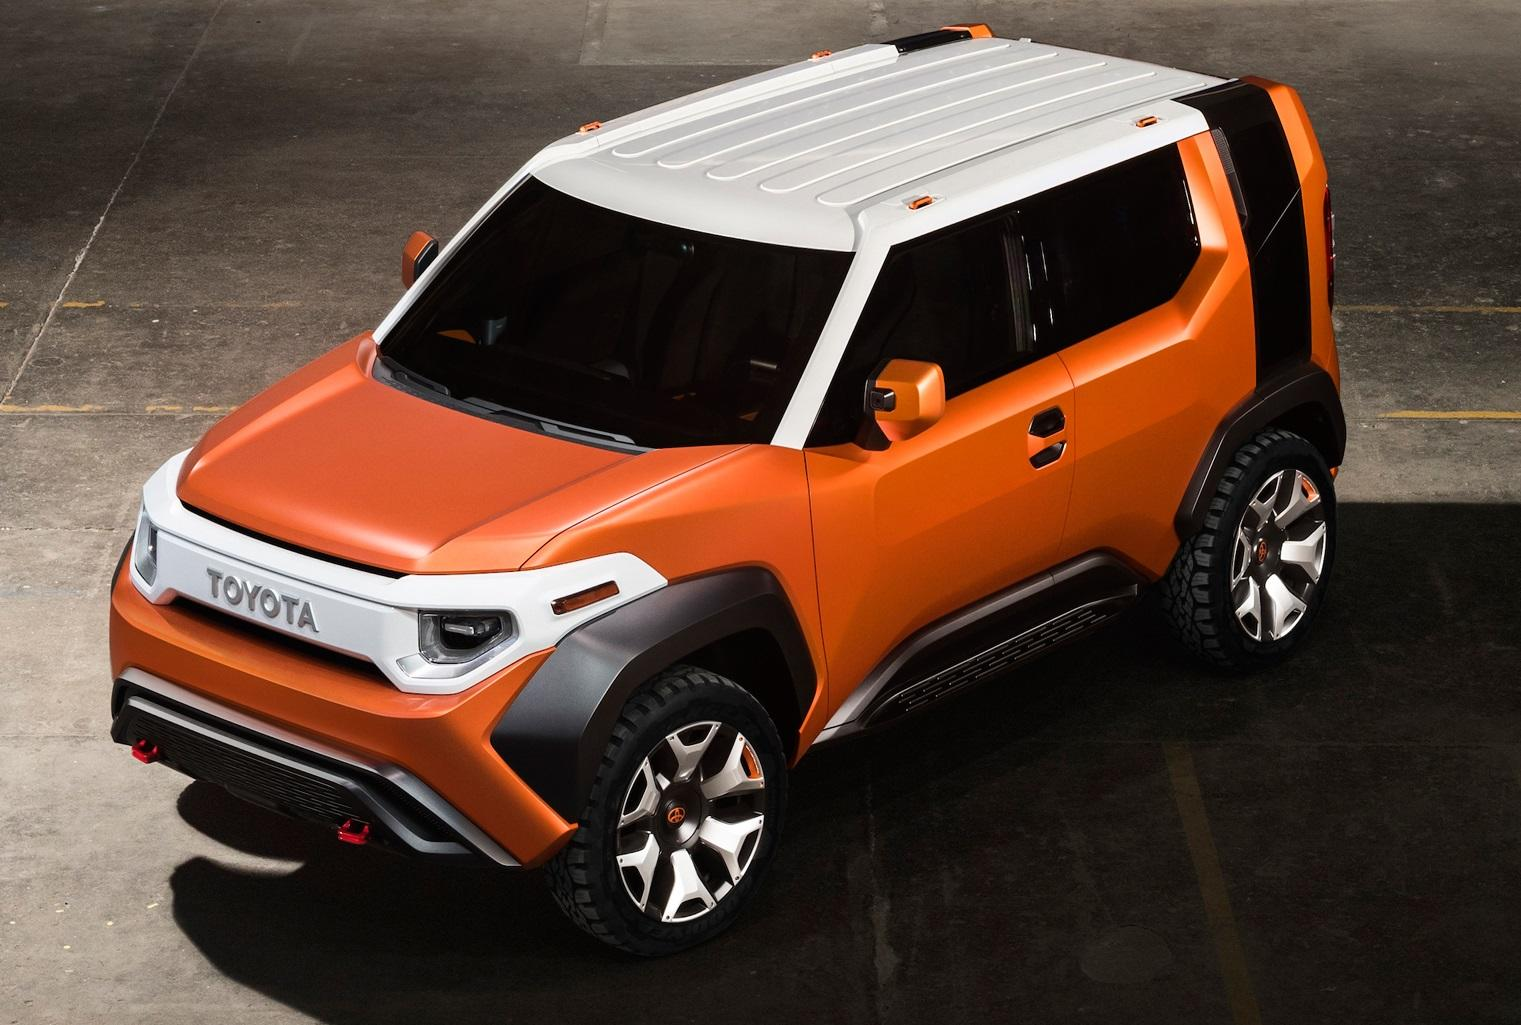 Toyota Toyota To Exhibit All Vehicle Lineup At North American - Orange beach car show 2018